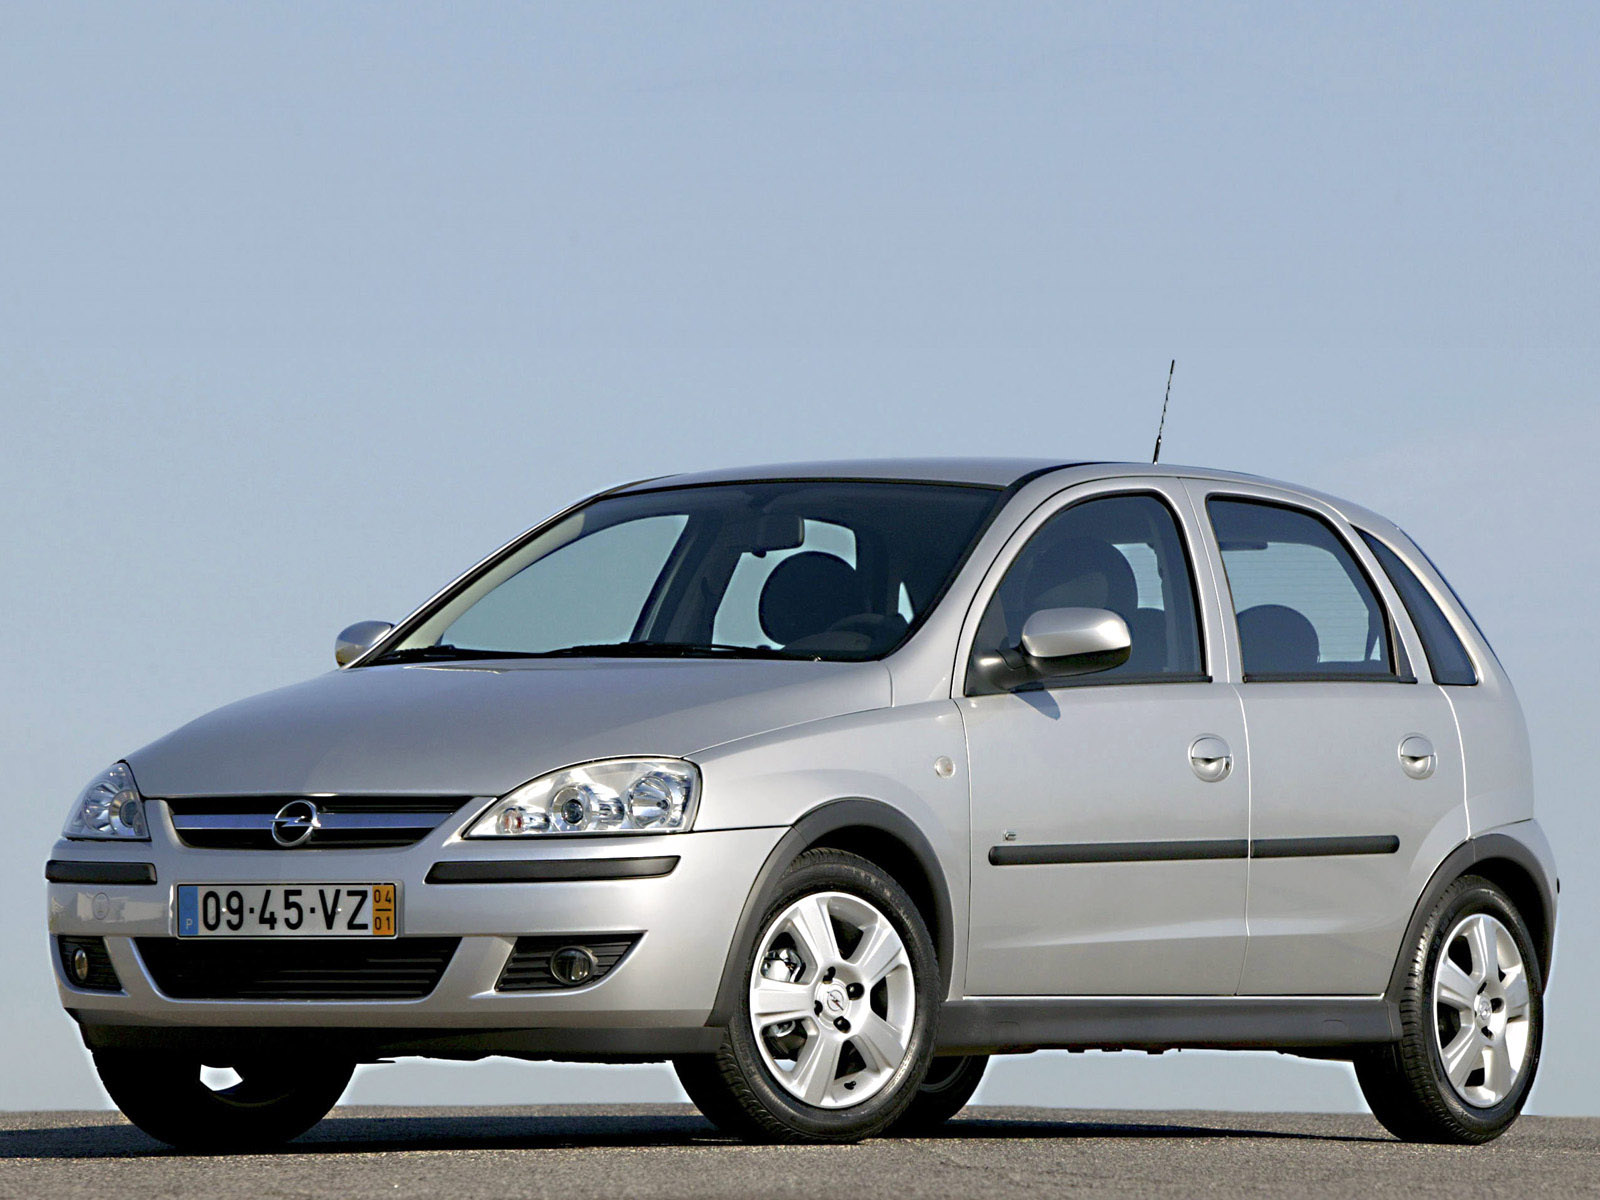 opel corsa cars specifications technical data. Black Bedroom Furniture Sets. Home Design Ideas